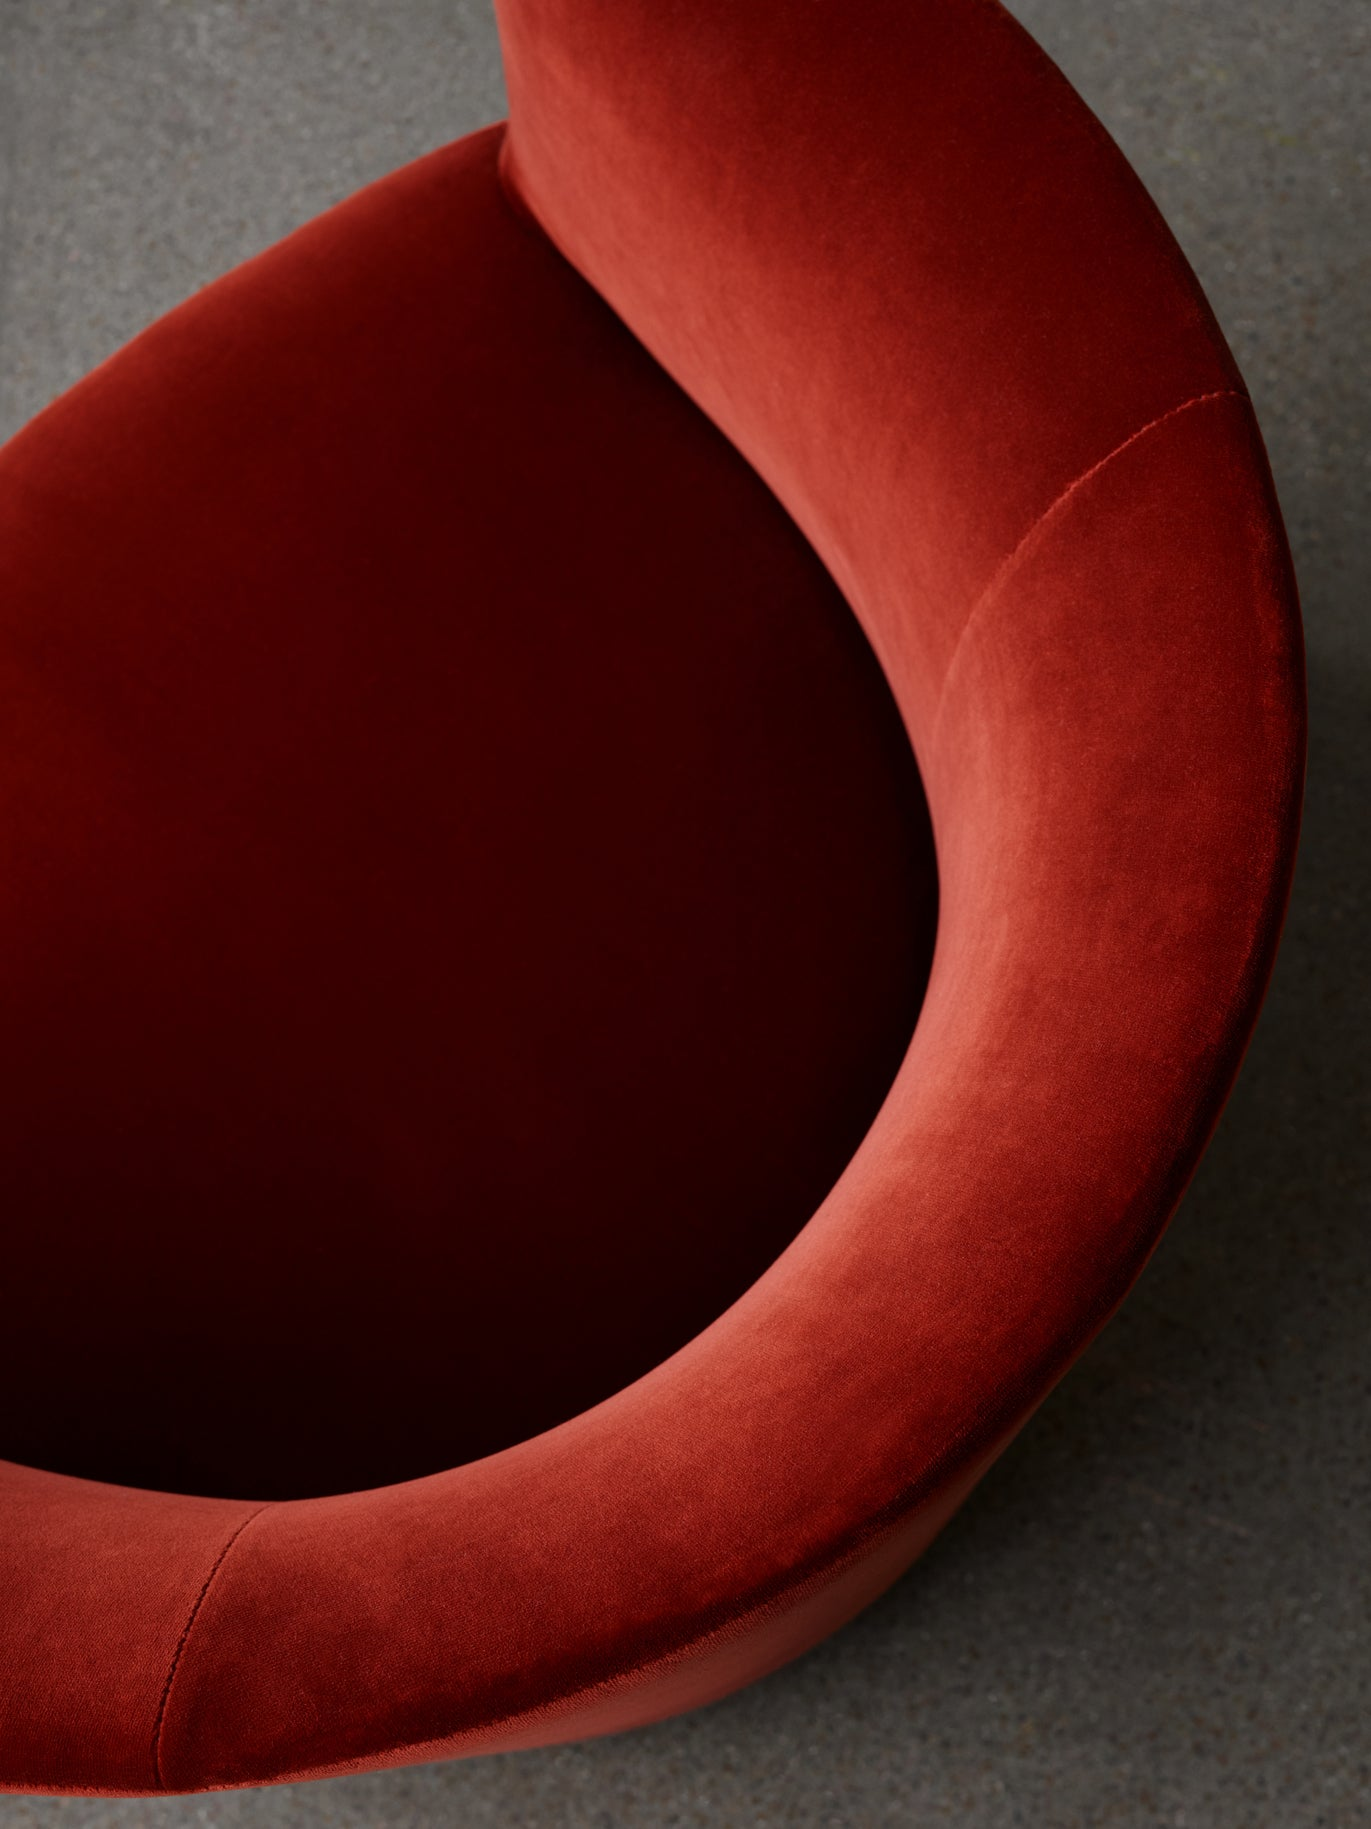 Tearoom — Club Chair-Nick Ross-Menu-Red Velvet-danish-interior-furniture-denmark-Average-design-toronto-canada